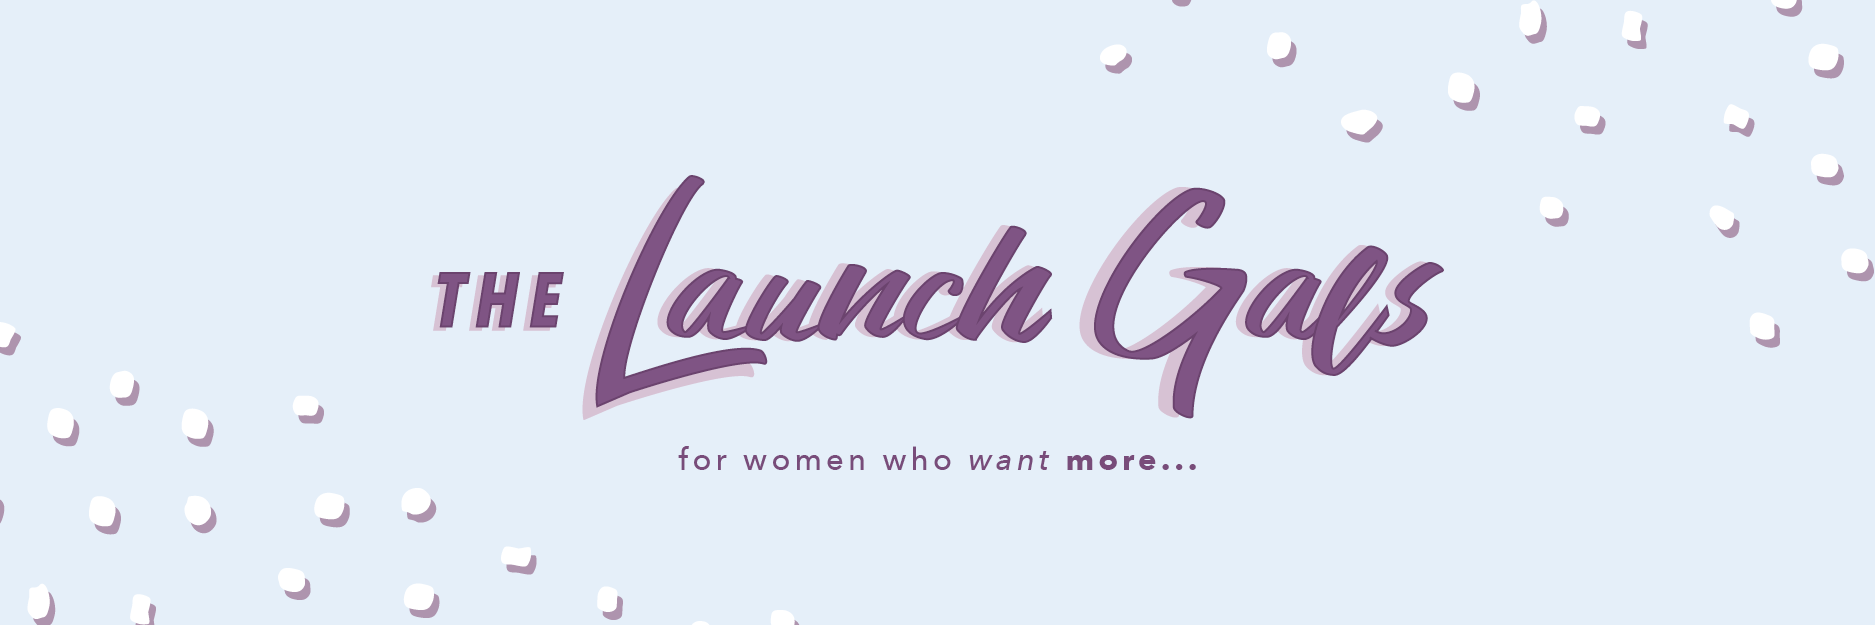 The Launch Gals - Email Header & Footer .png